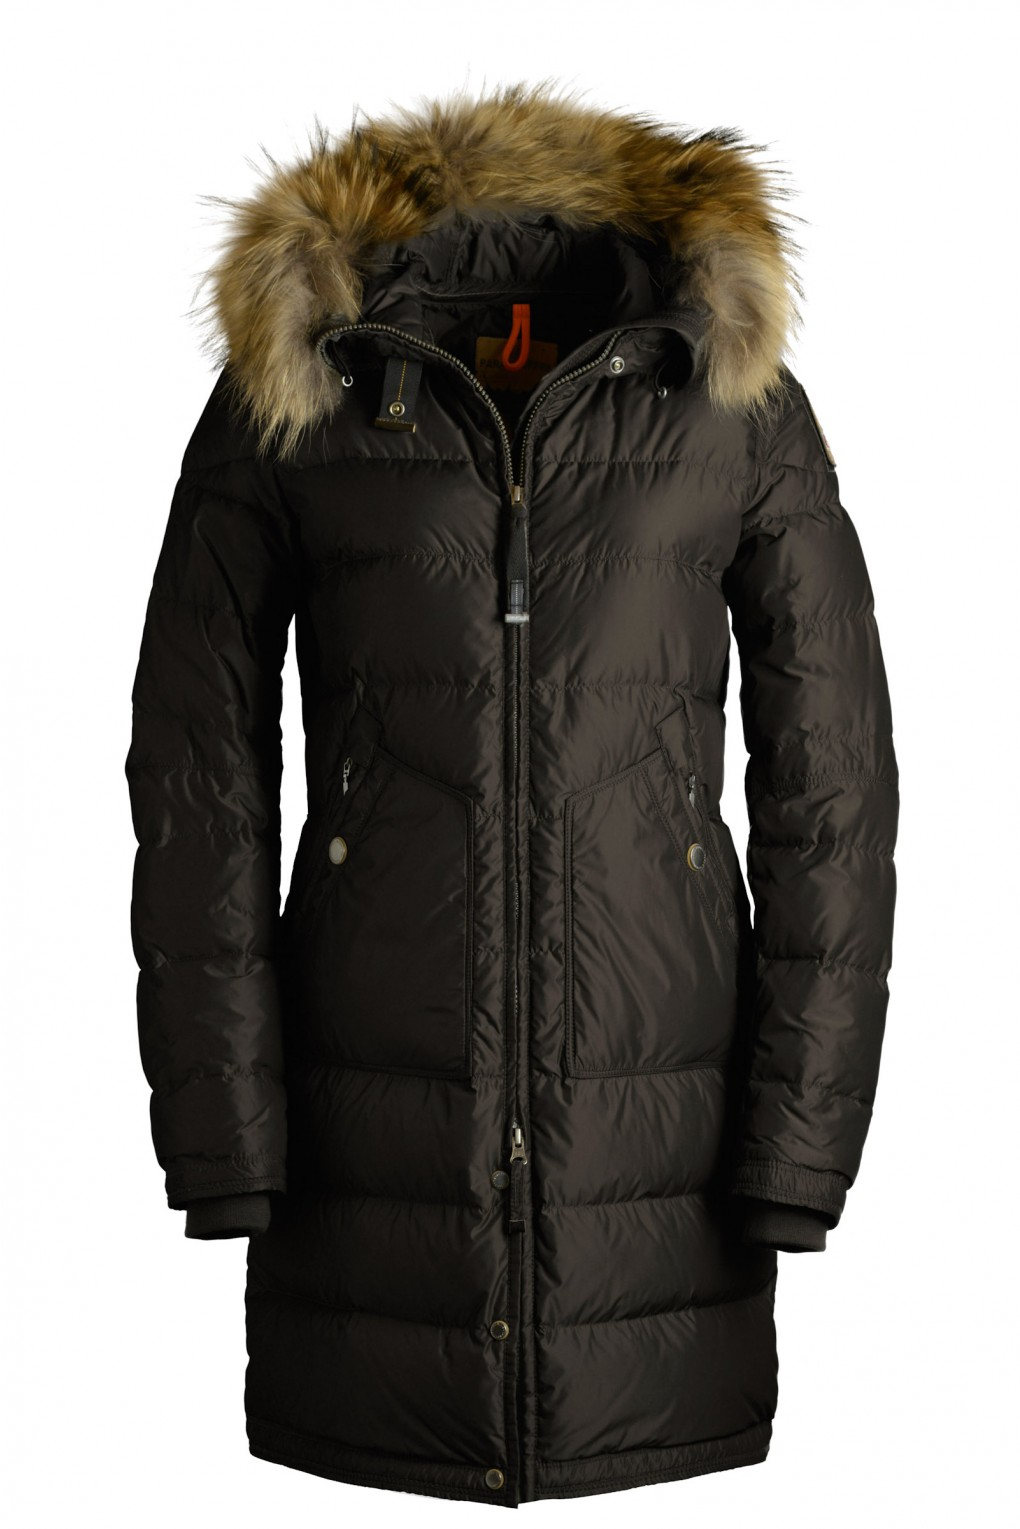 parajumpers LIGHT LONG BEAR woman outerwear Brown